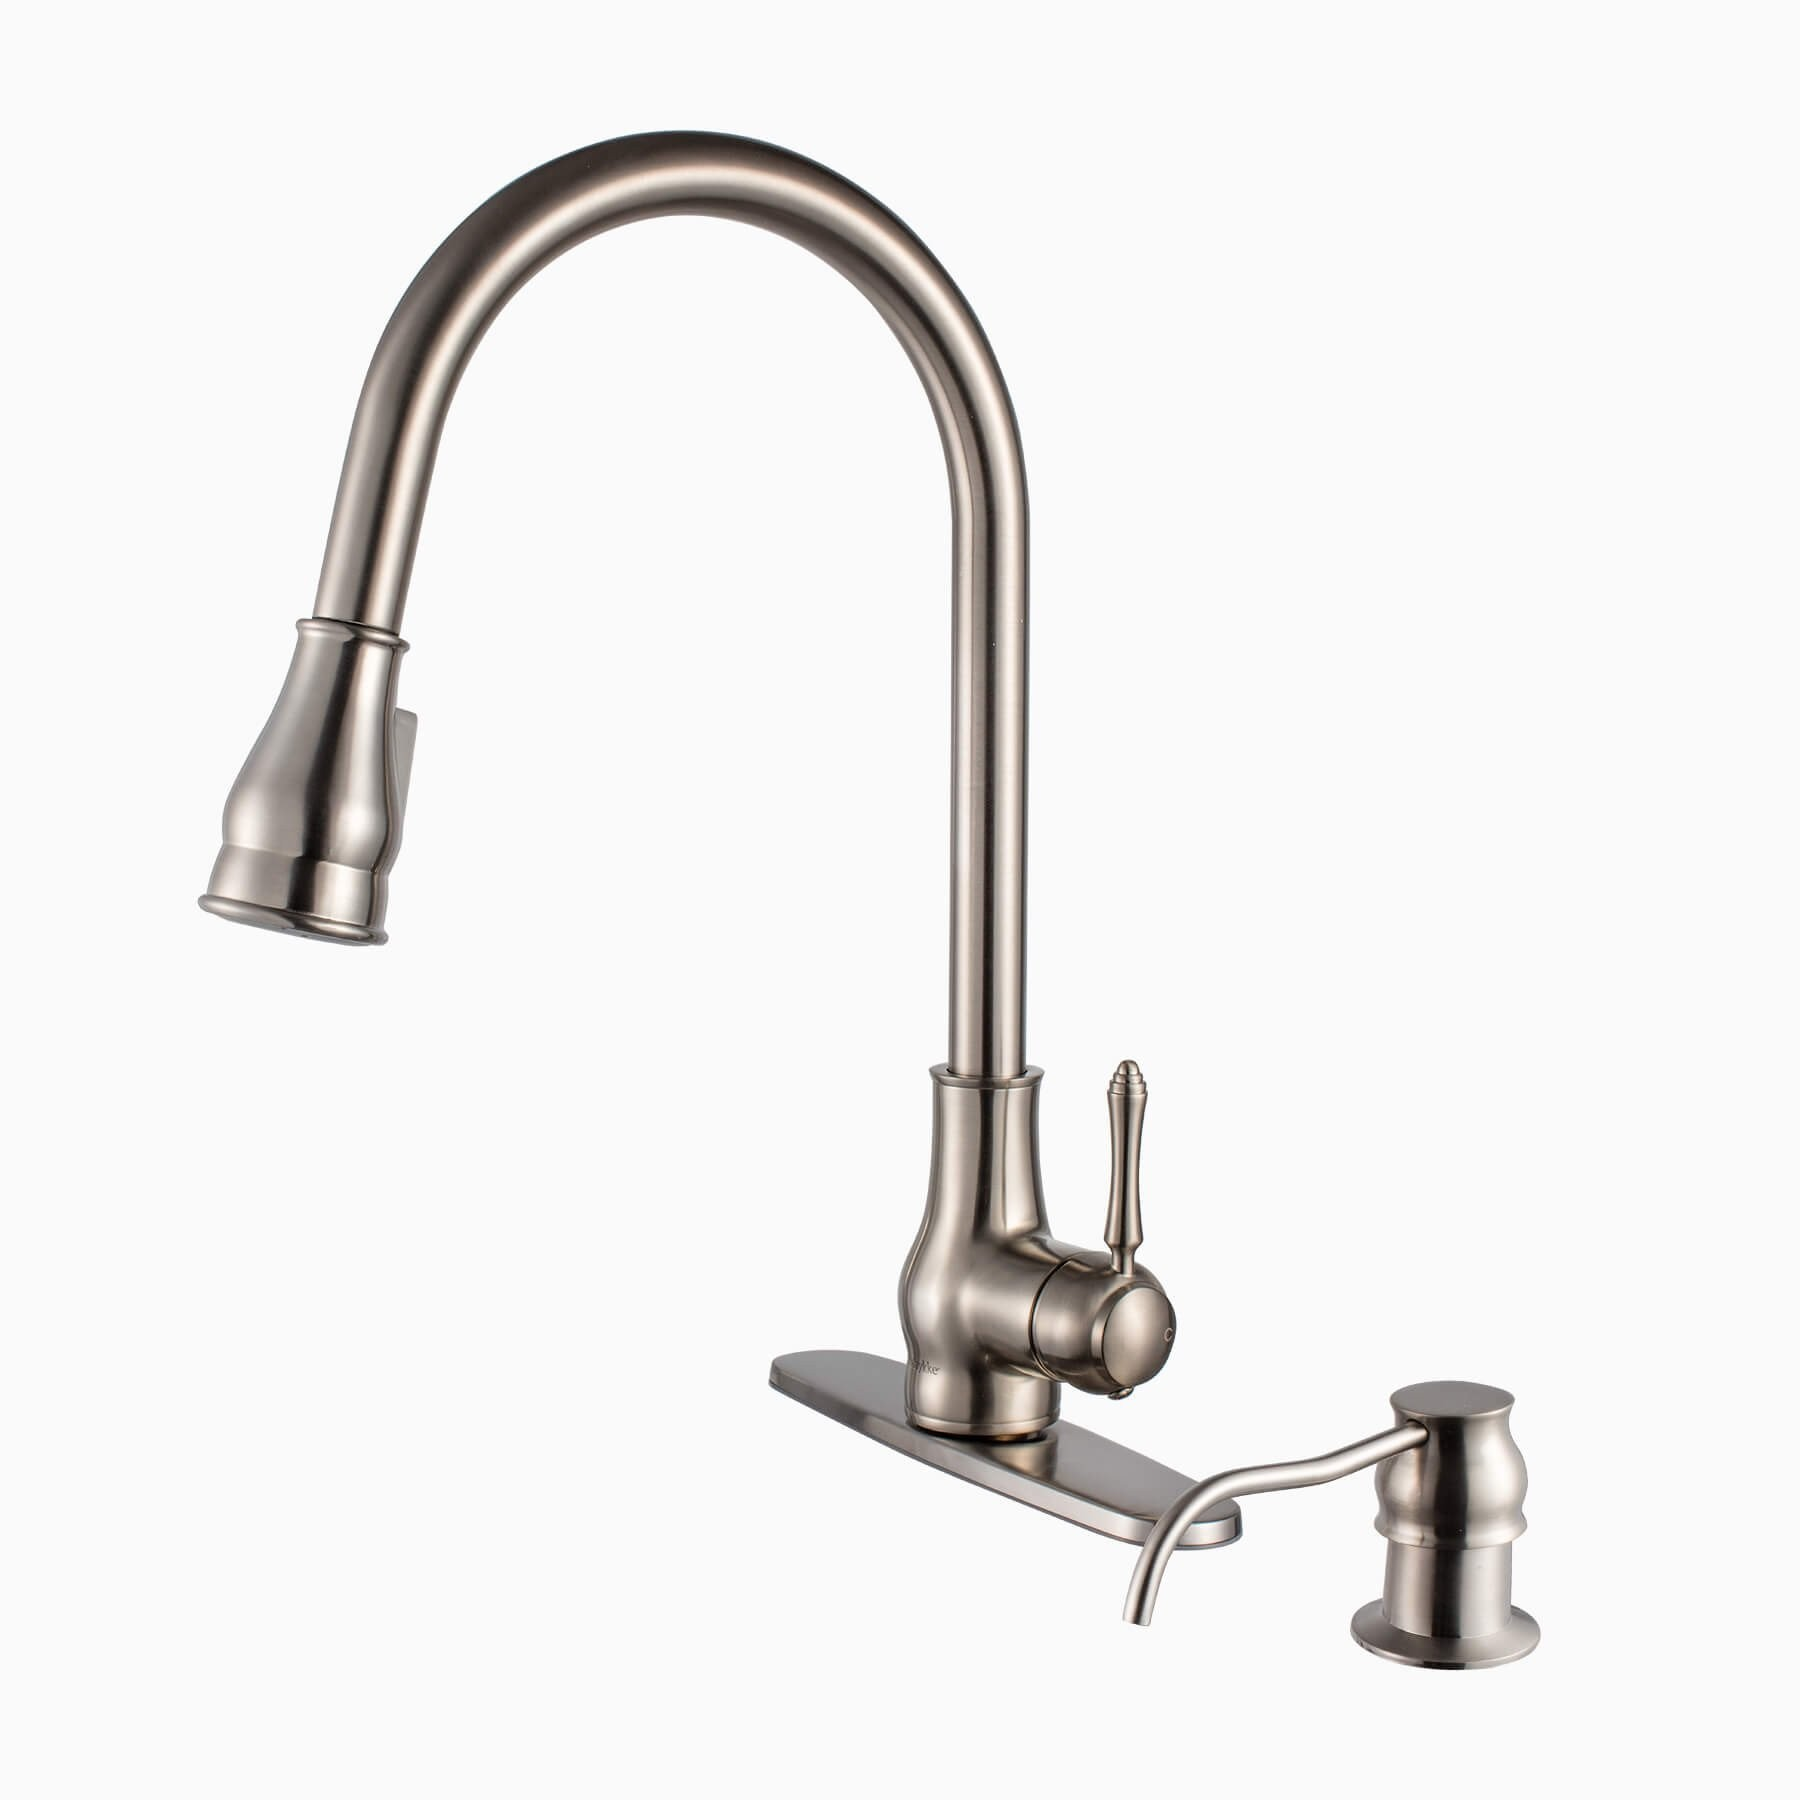 Brixton Br Kitchen Sink Faucet Brushed Nickel Single Hole Handle Lever Traditional